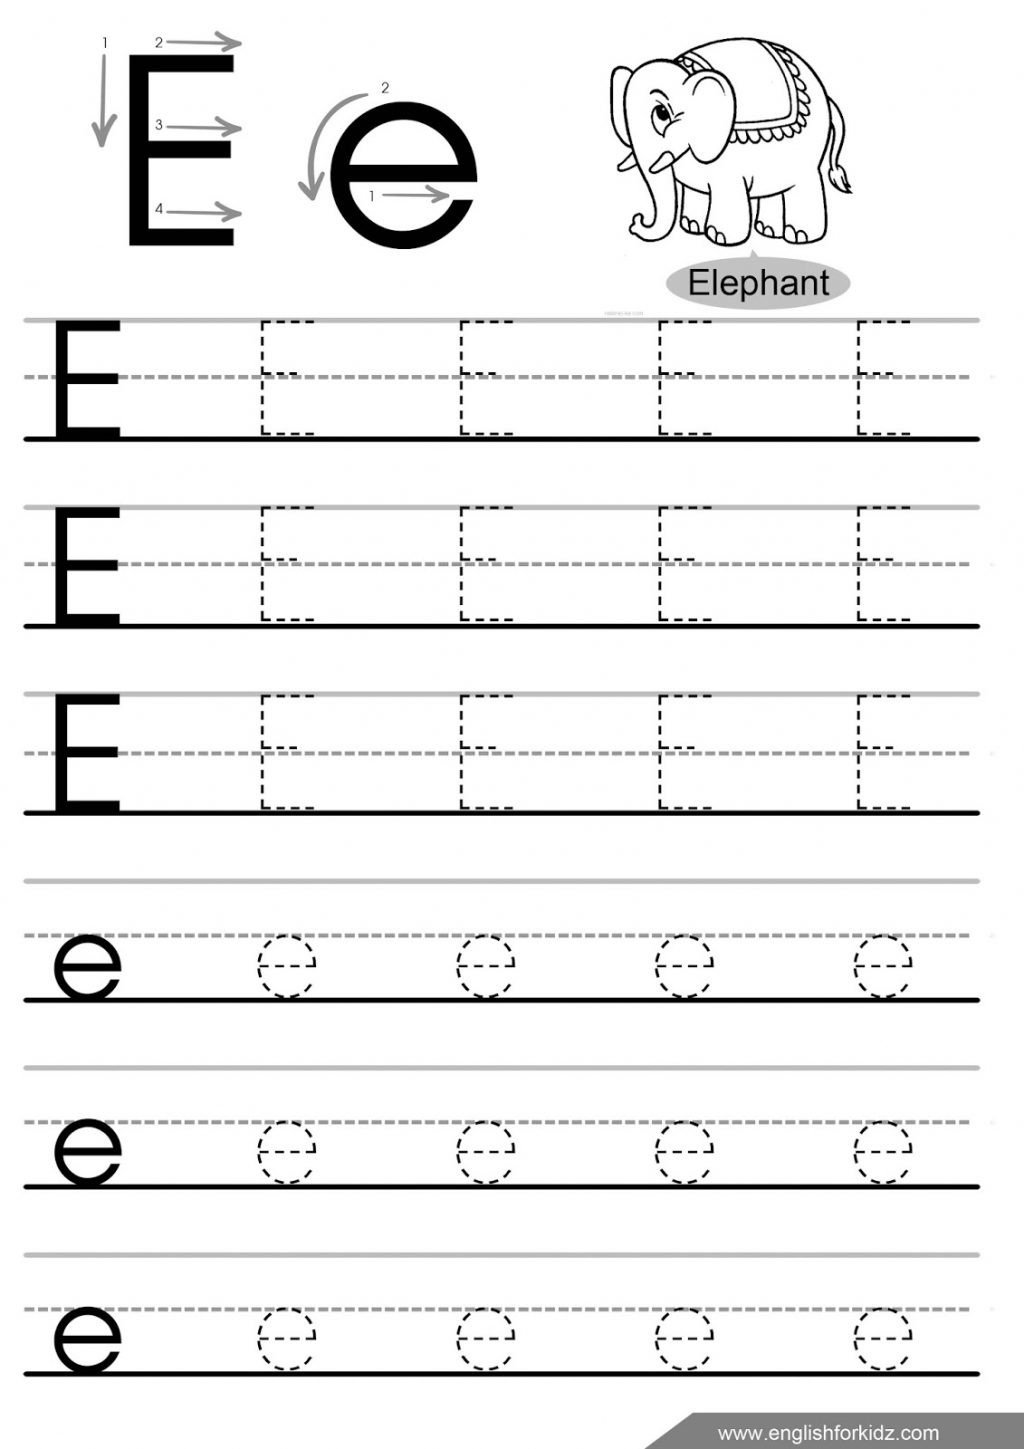 Silent E Worksheets for Kindergarten 32 Fun Letter E Worksheets